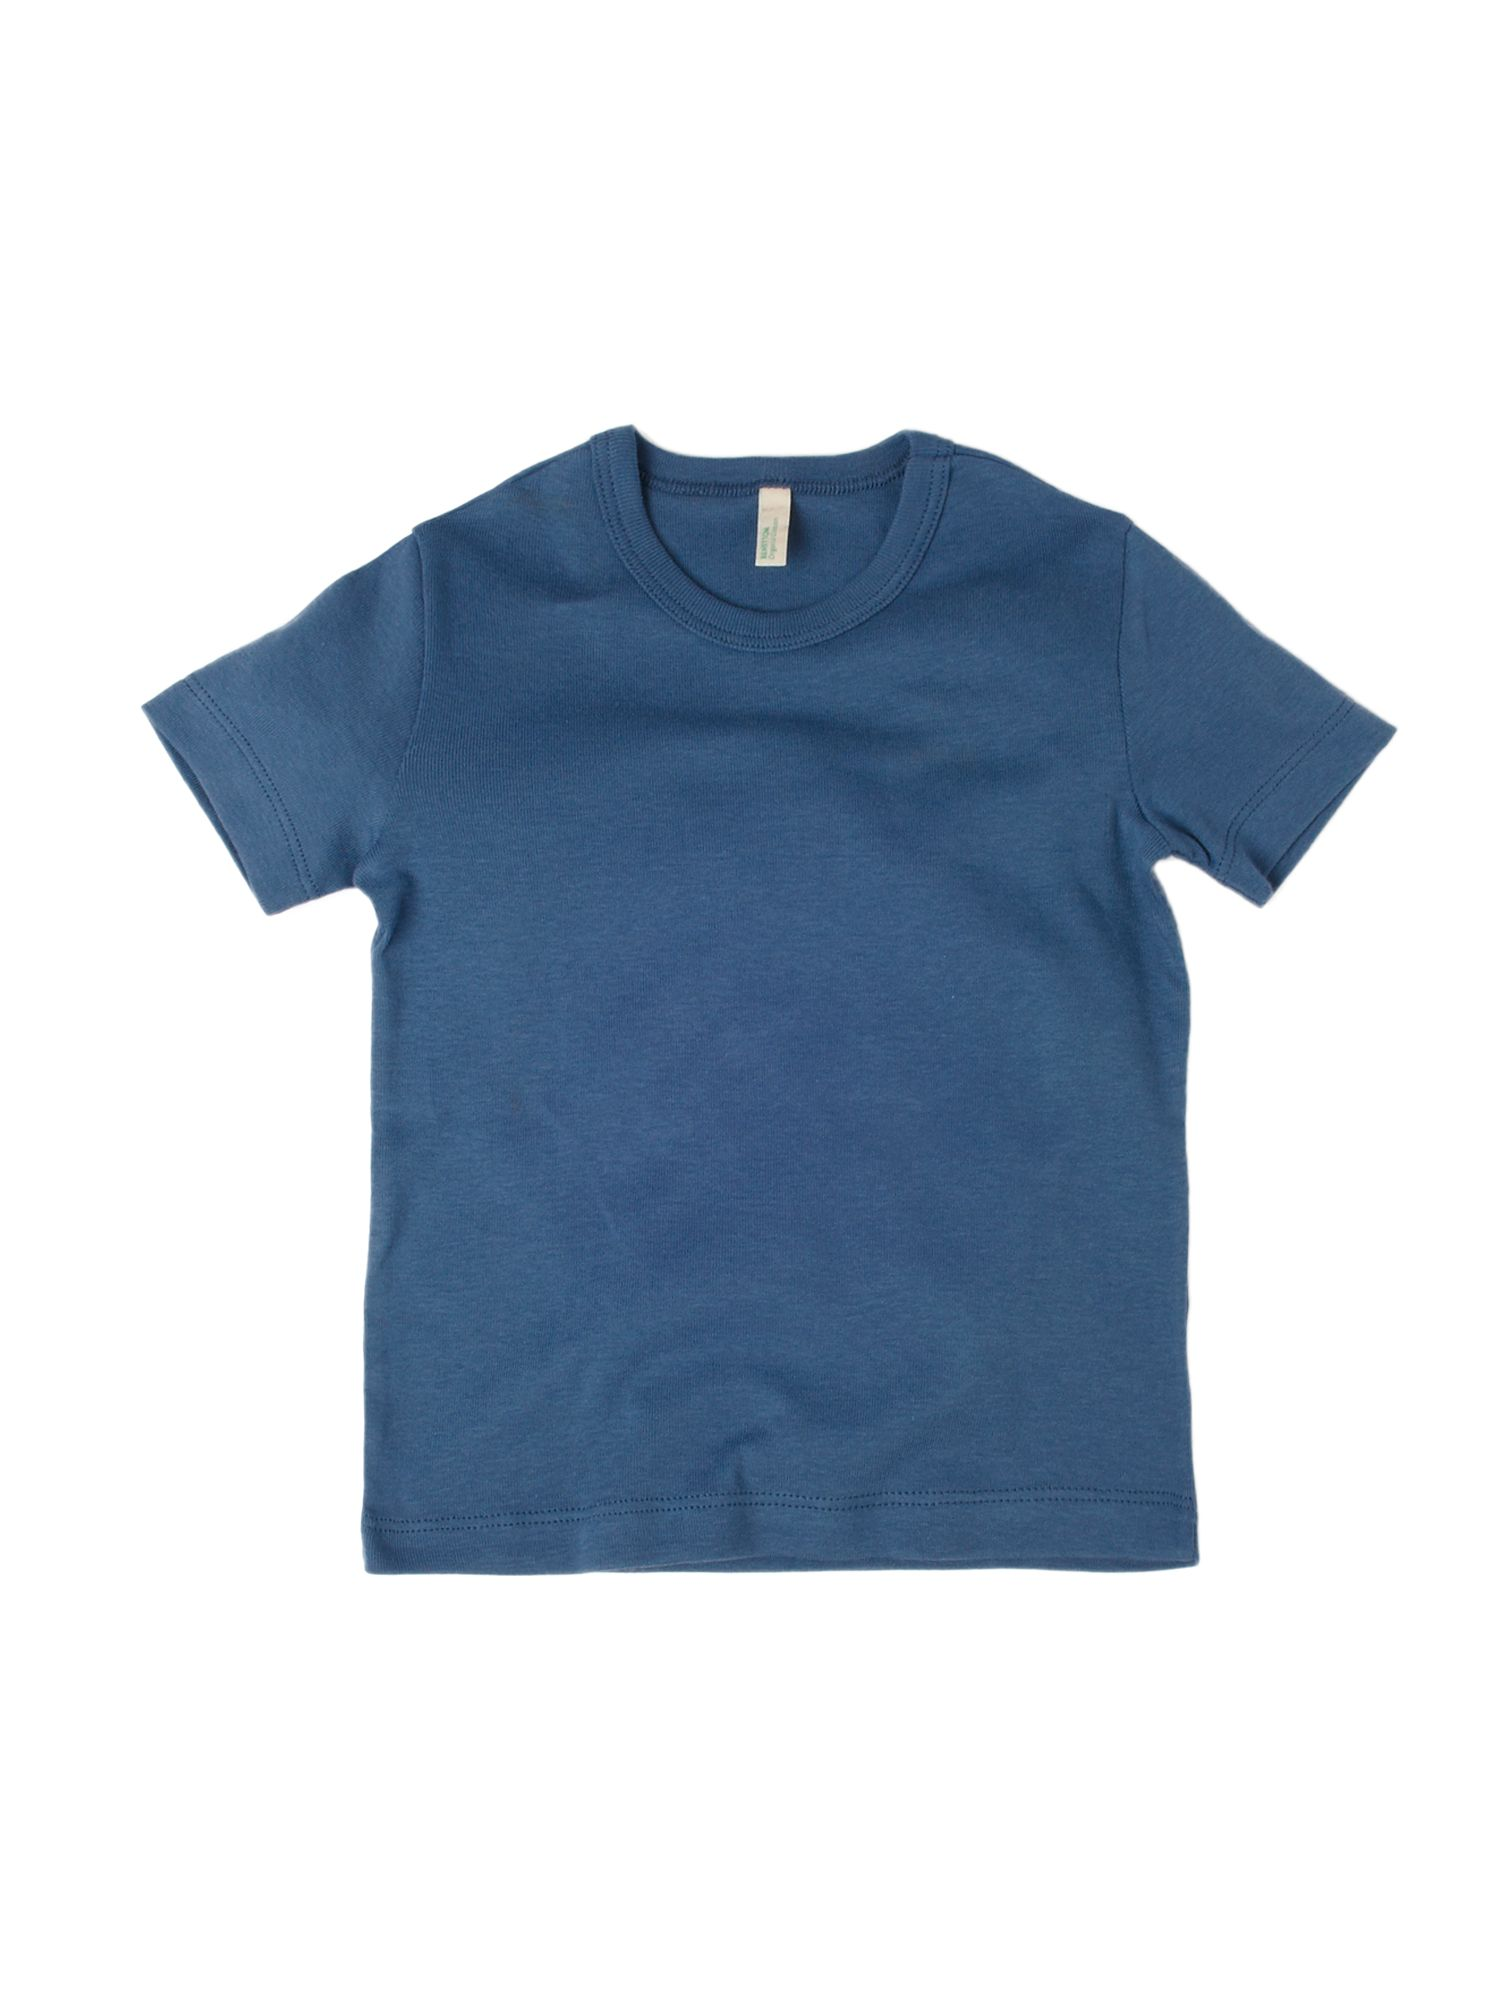 Benetton Short-sleeved logo crew neck T-shirt Blue product image